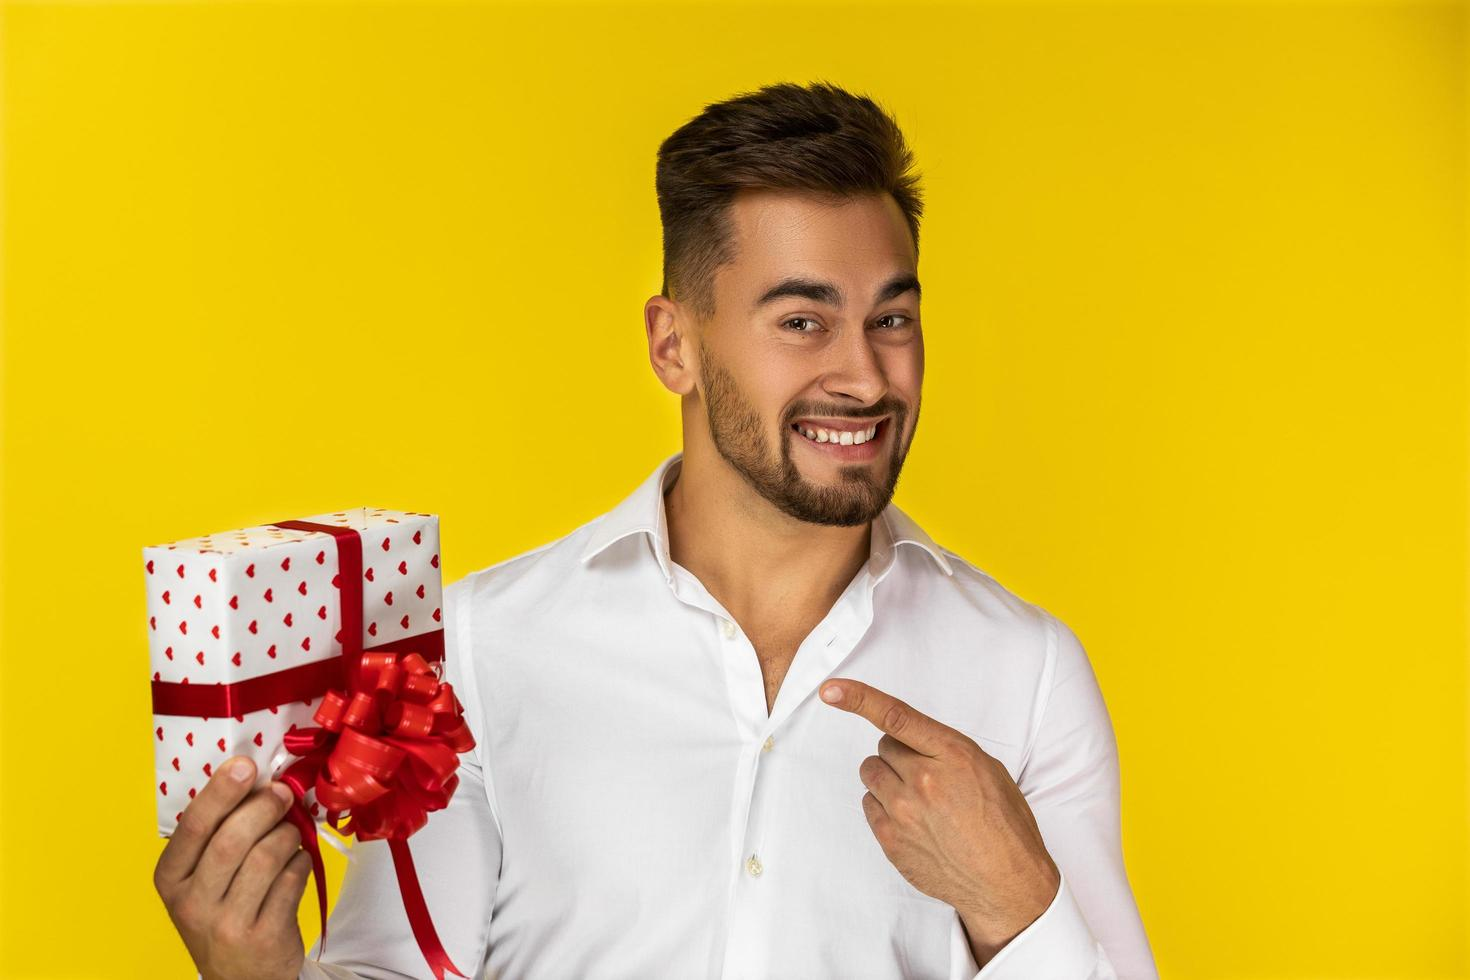 Man holding a gift photo